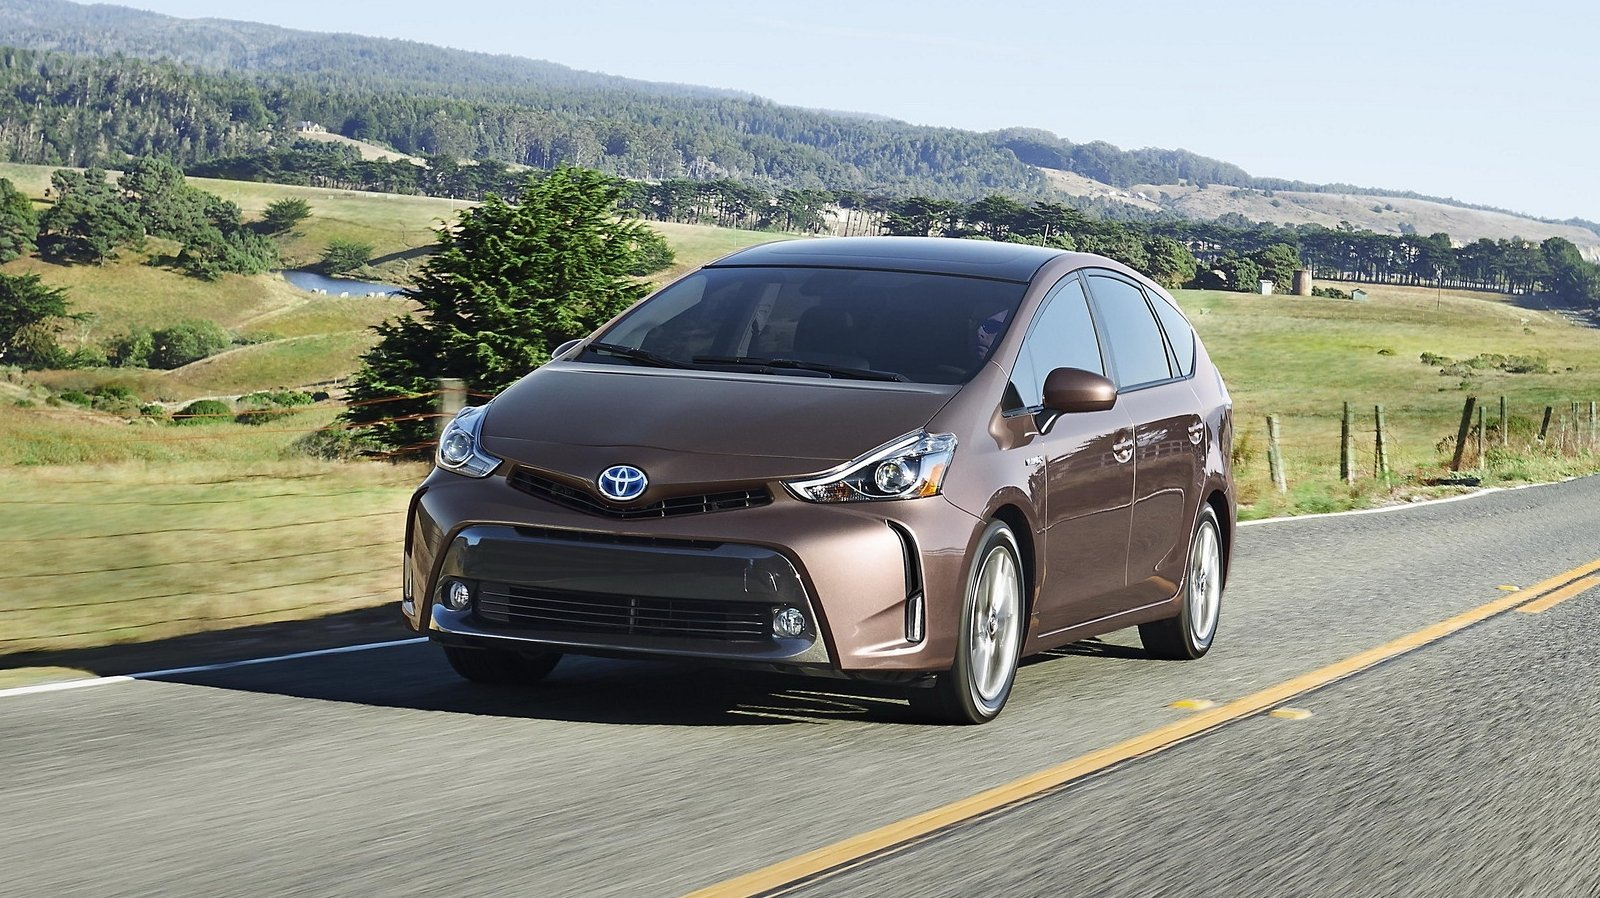 2015 toyota prius v review top speed. Black Bedroom Furniture Sets. Home Design Ideas